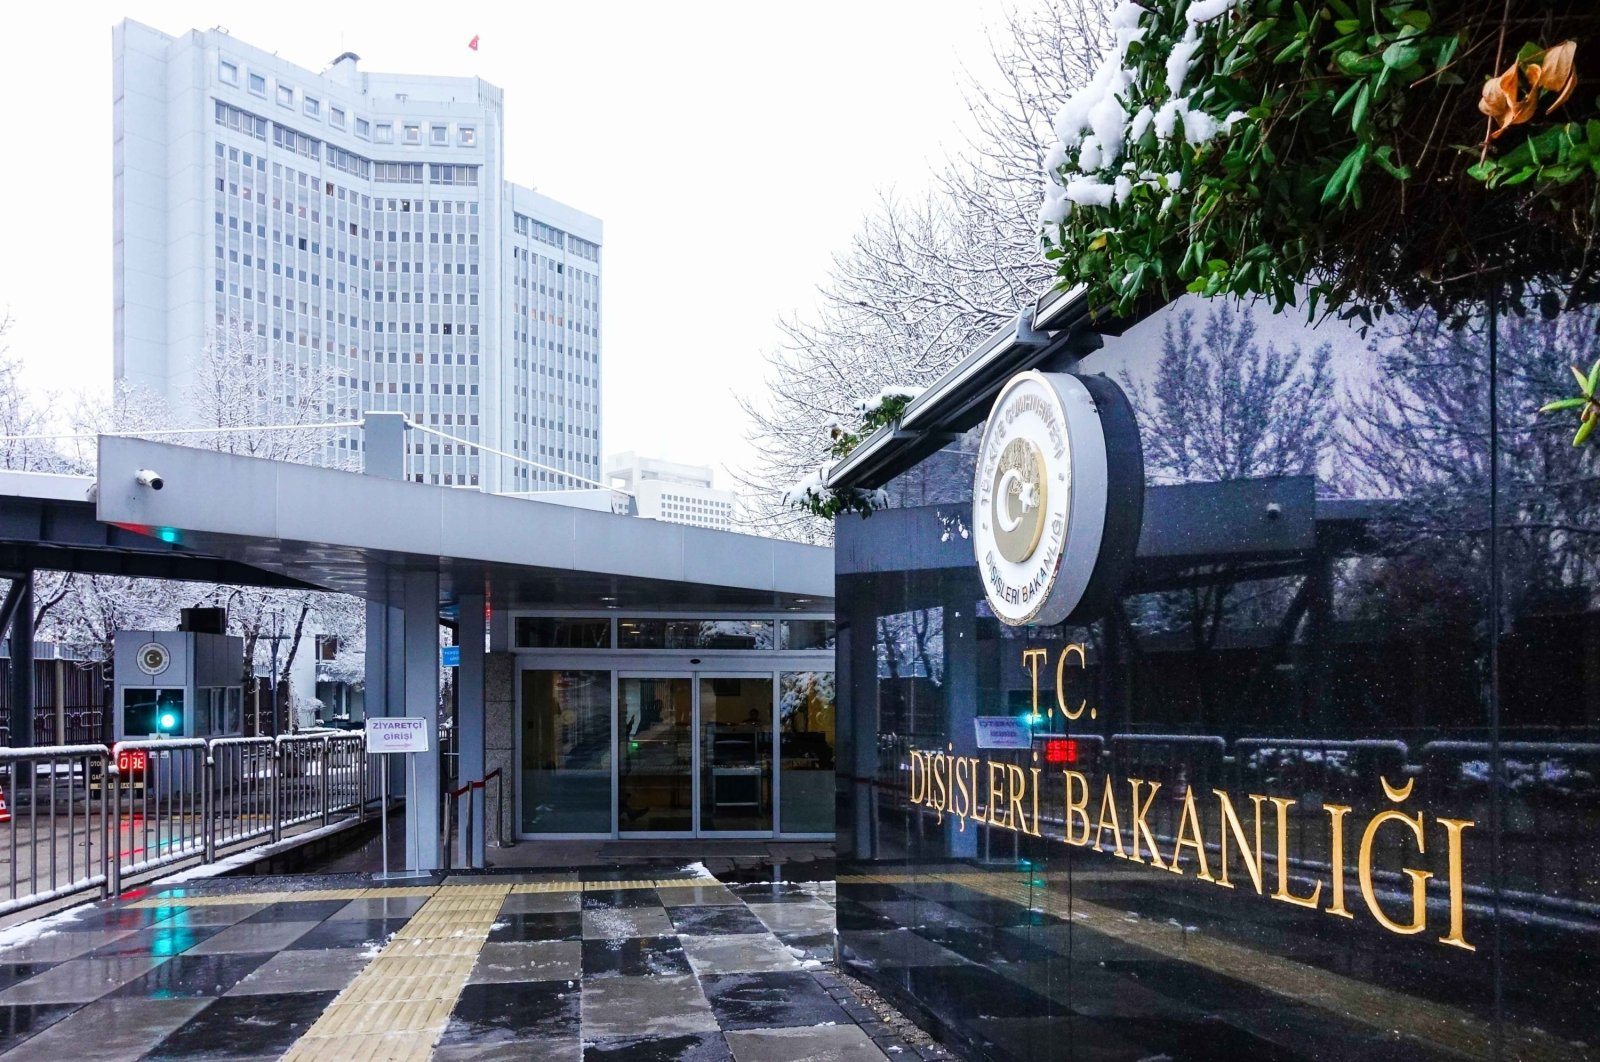 The Ministry of Foreign Affairs headquarters in Turkey's capital Ankara in this undated file photo. (File Photo)